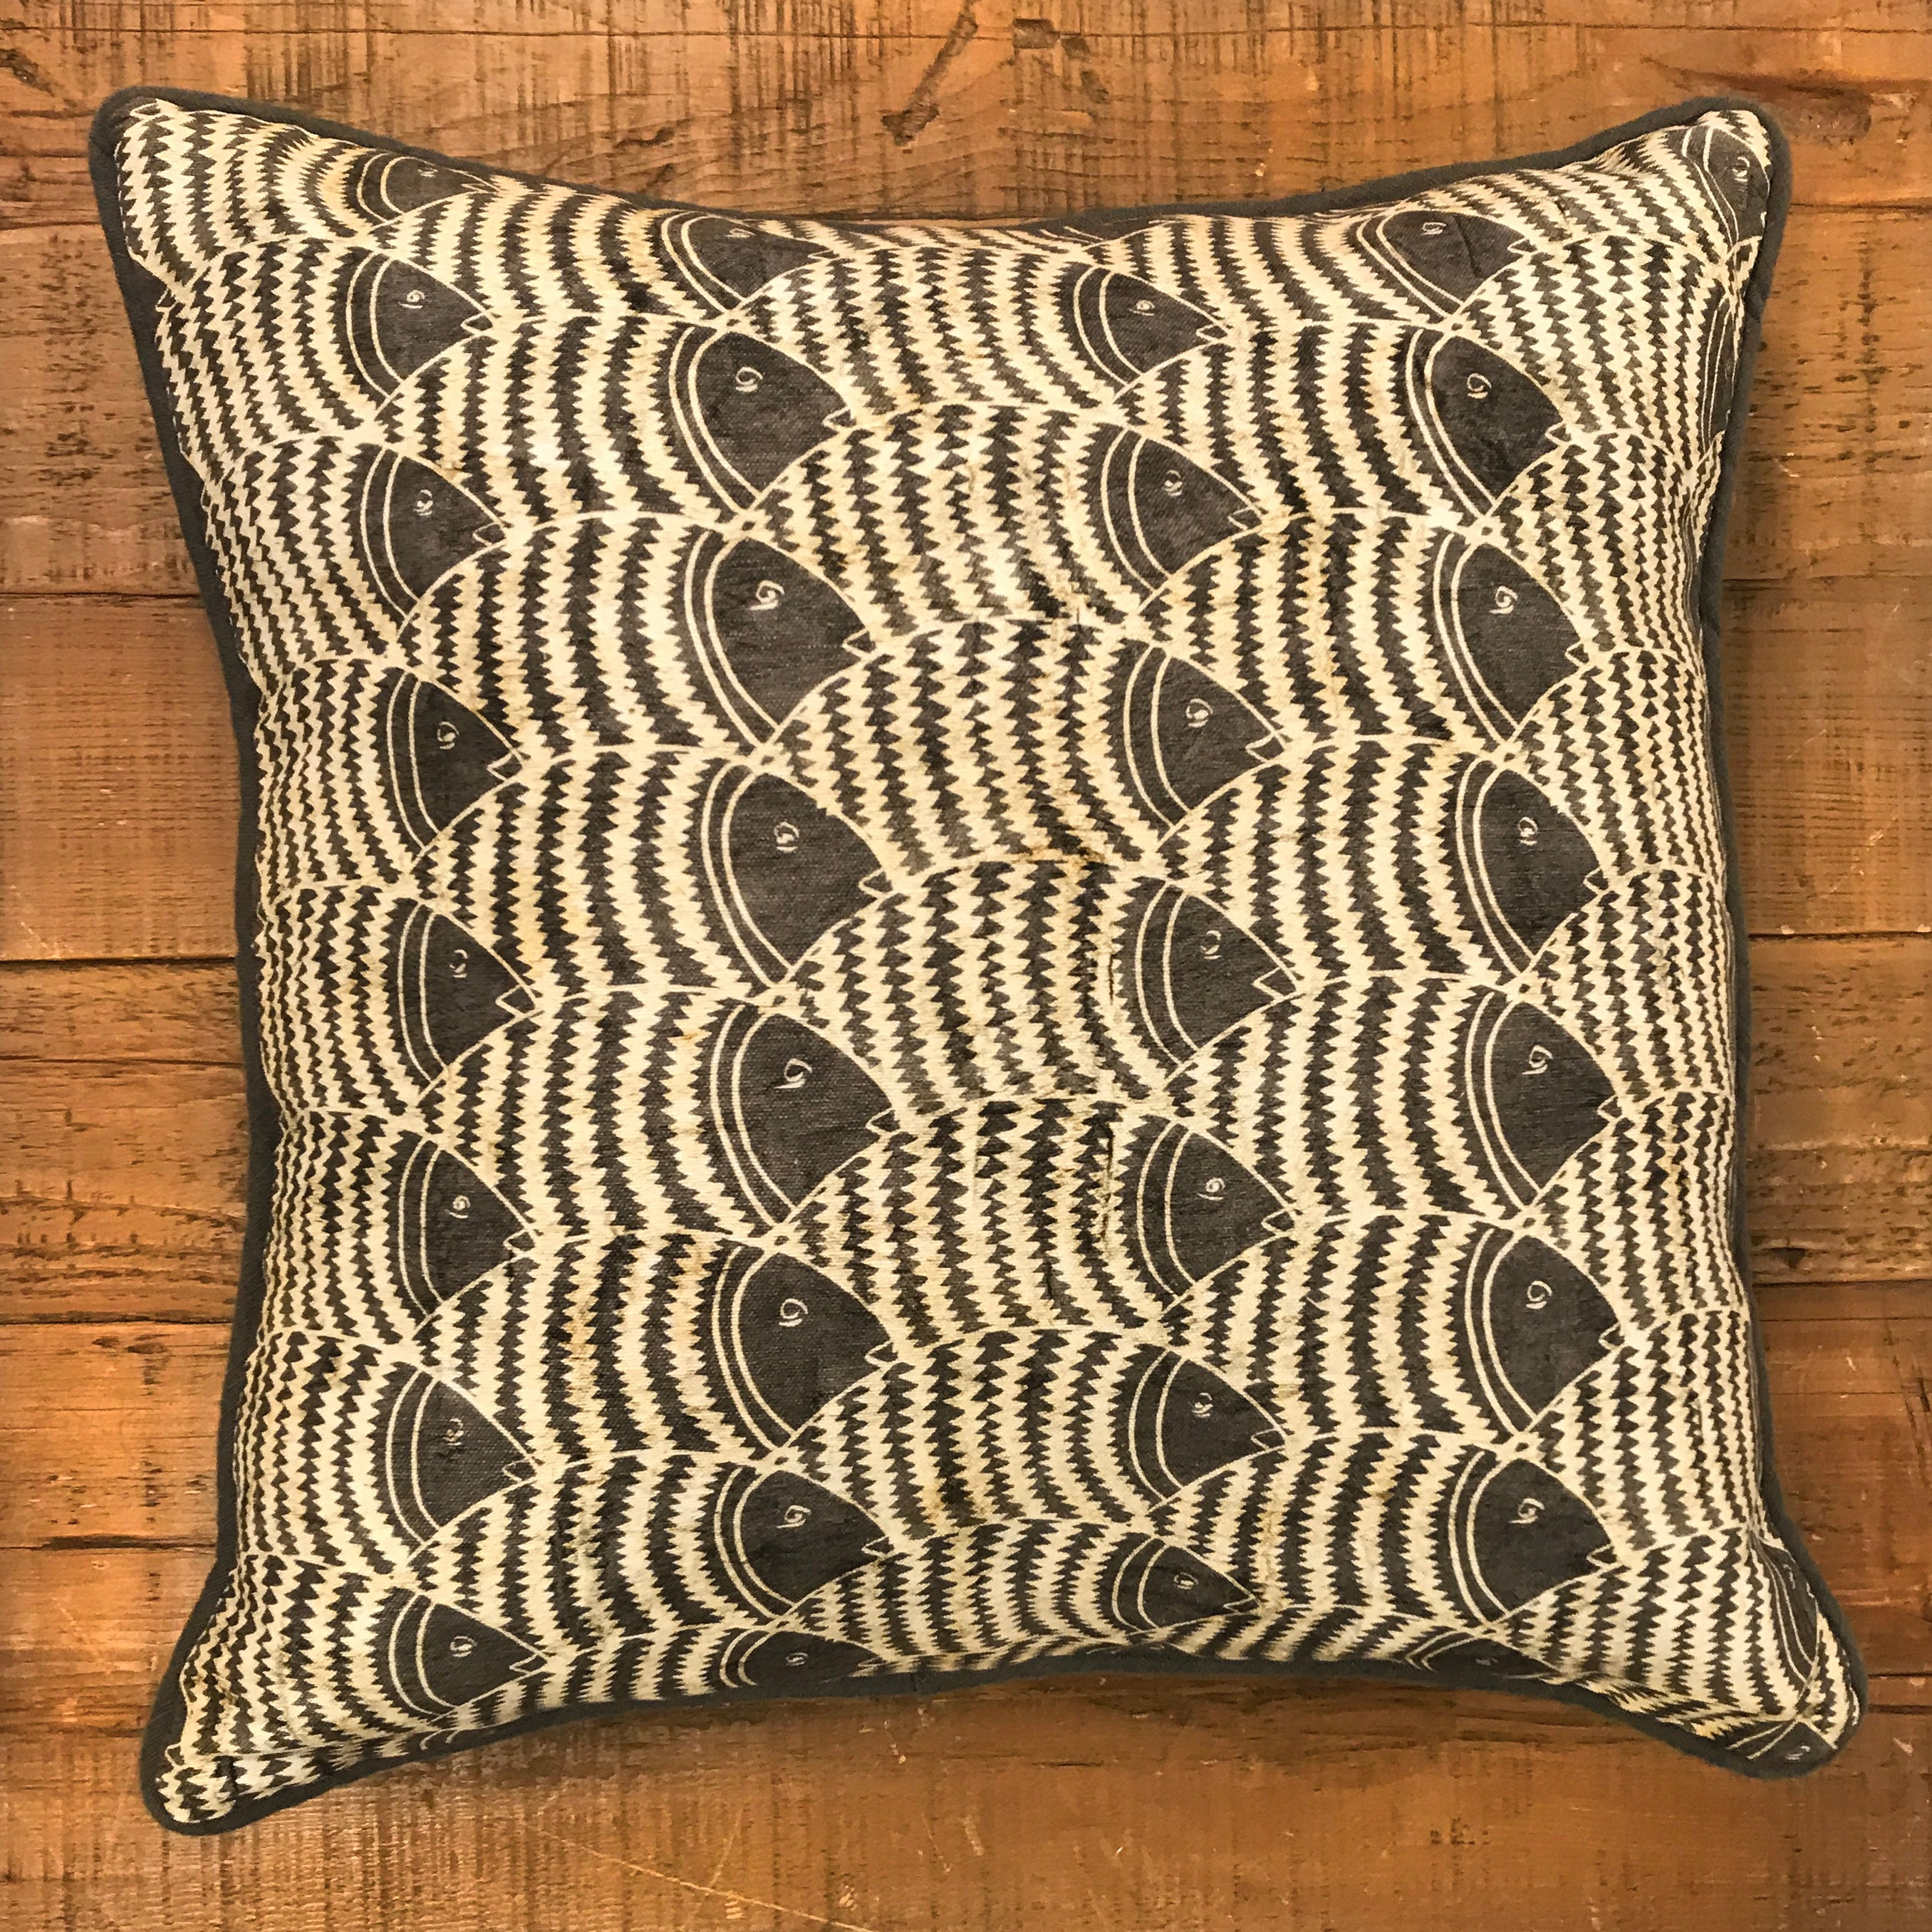 Bonefish 18x18 Pillow